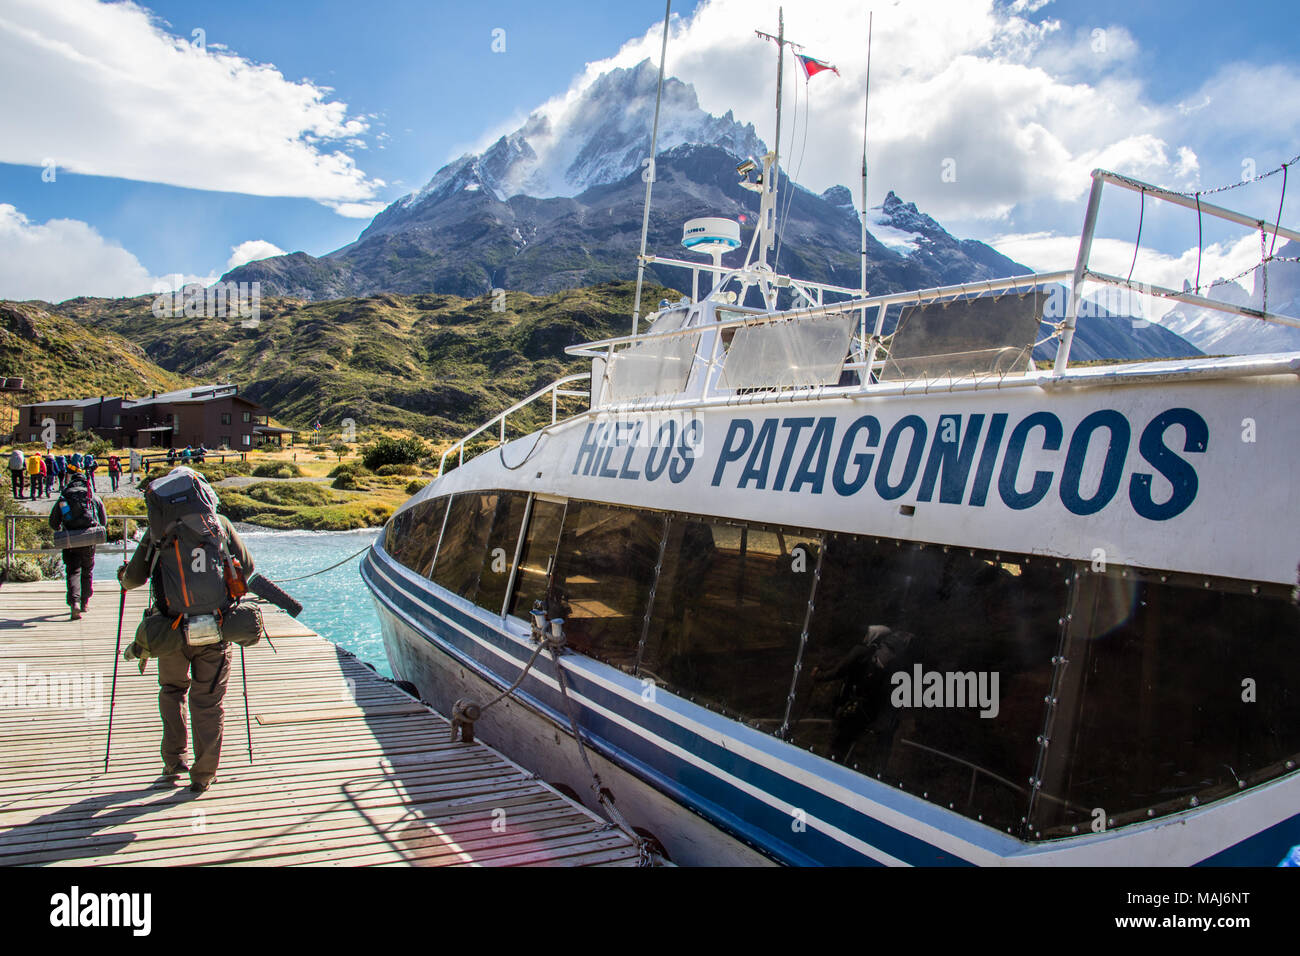 Hielos Patagonicos, Sightseeing boat on Lago Pehoe, Torres del Paine National Park, Patagonia, Chile - Stock Image